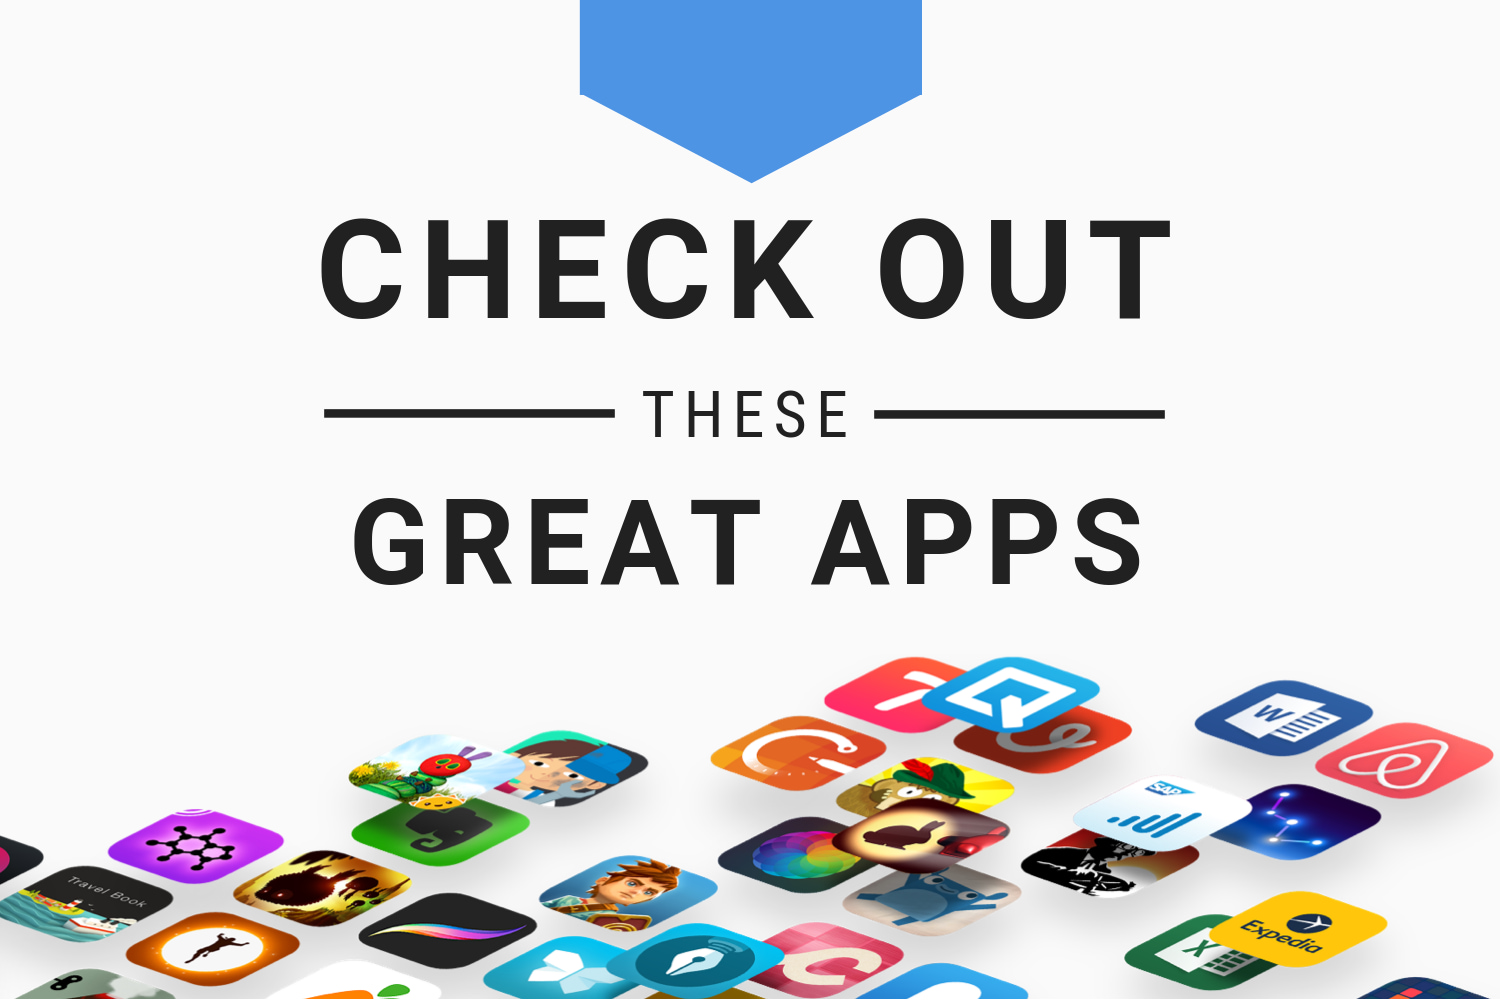 Finimize, Episode, Spend Stack, and other apps to check out this weekend